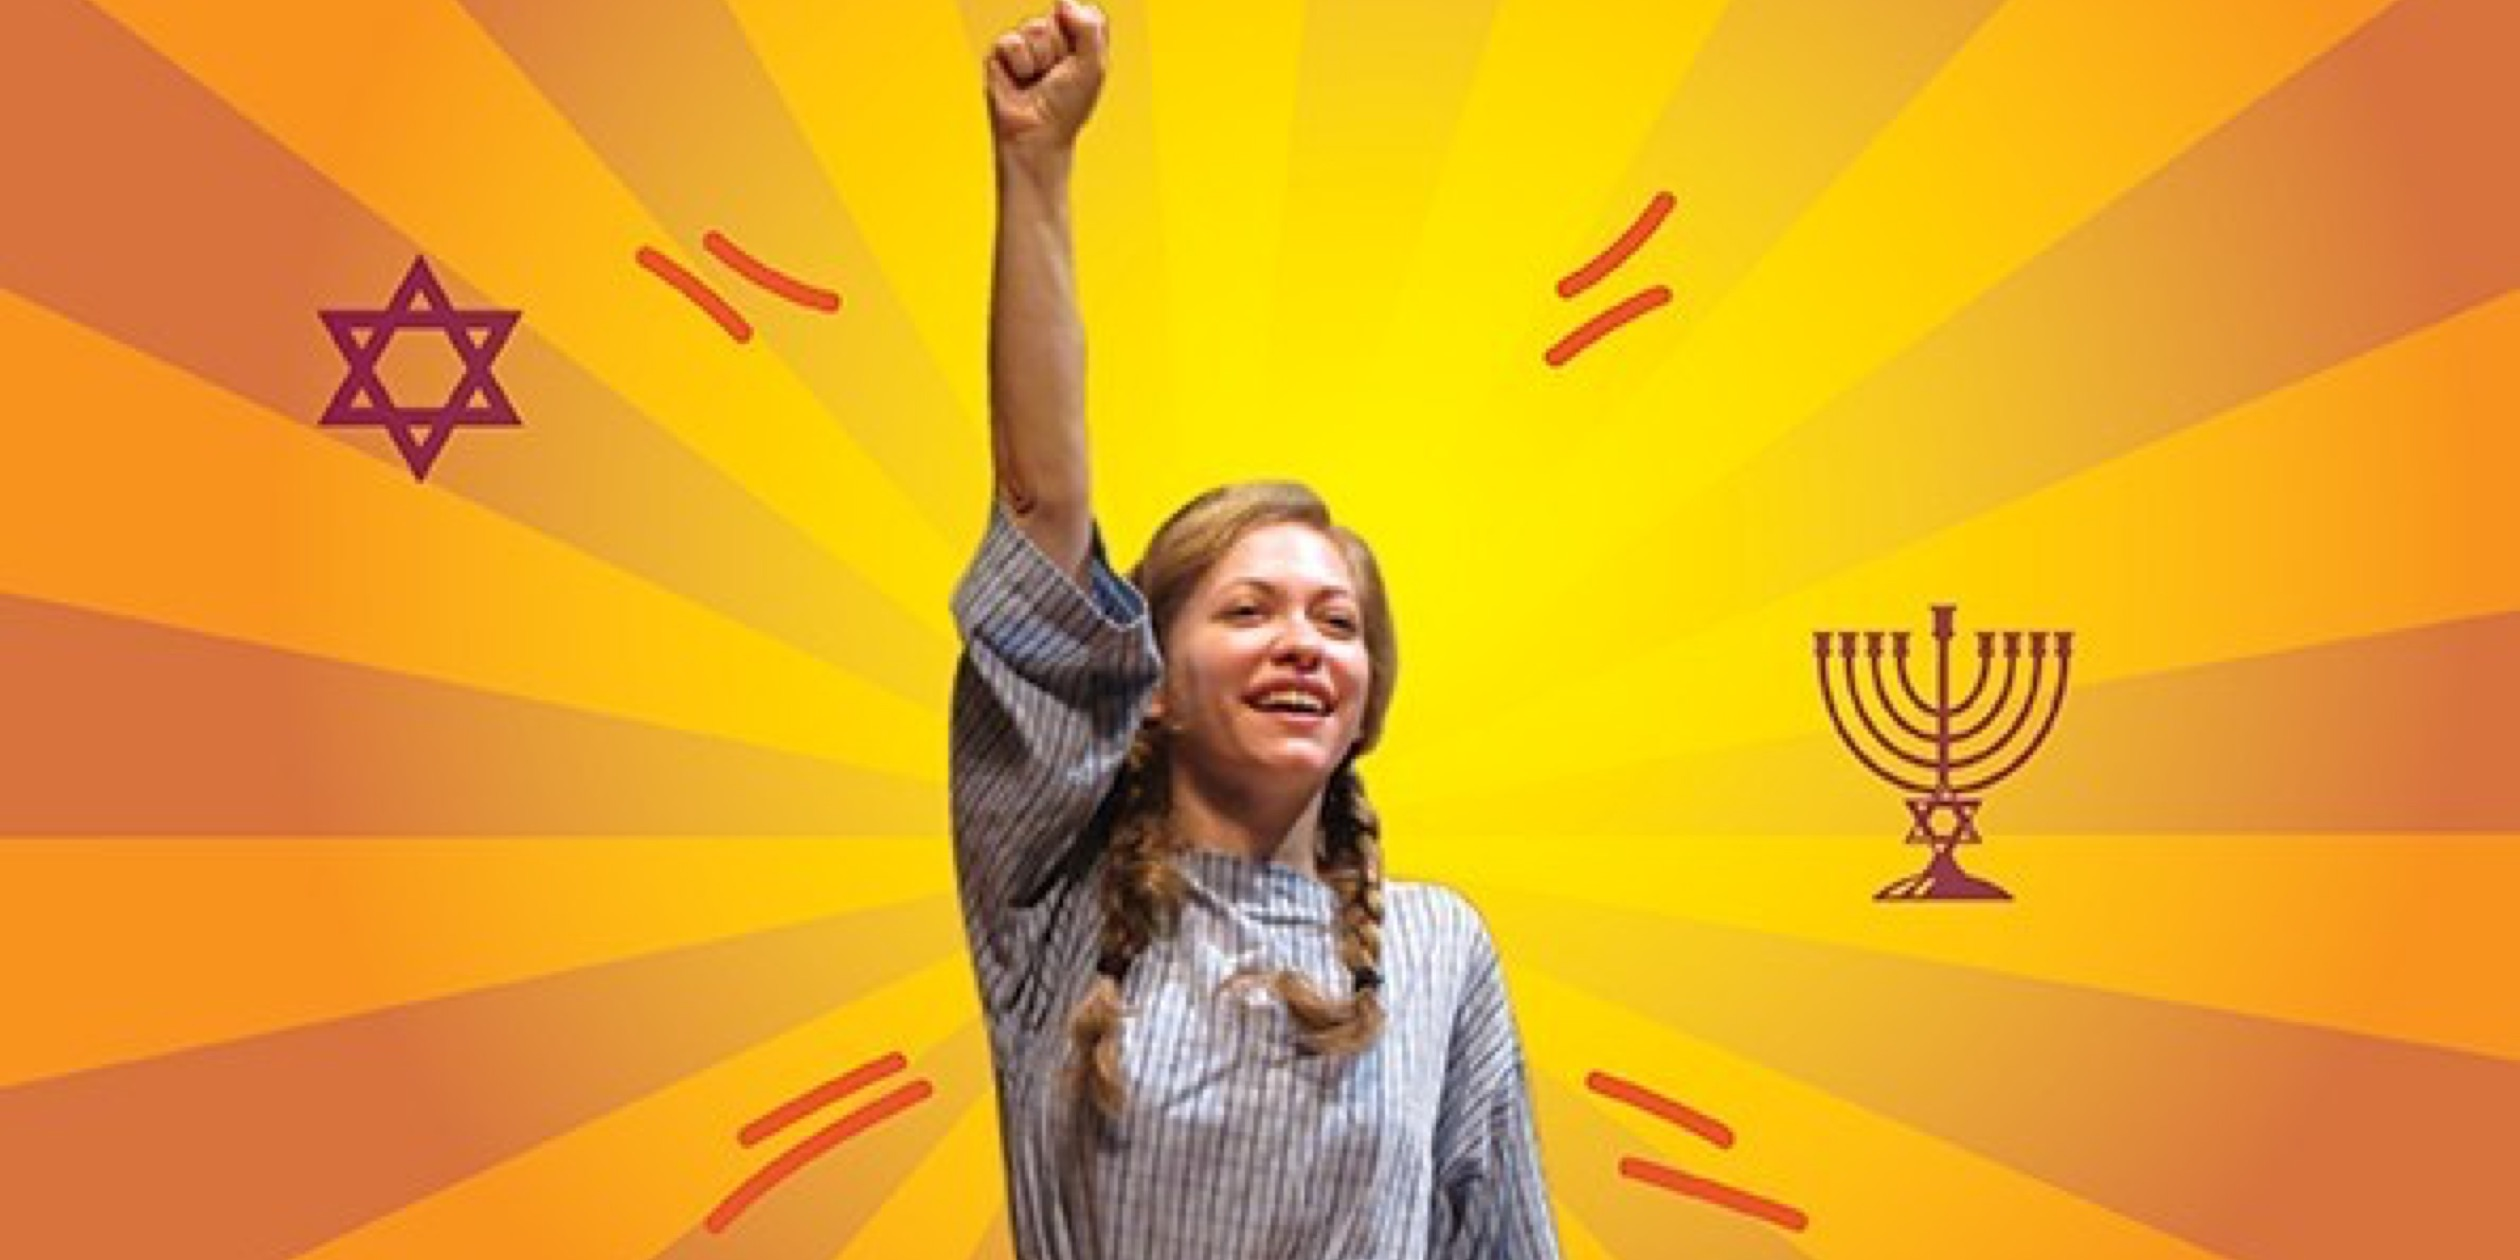 Judy & the Maccabees: A Hanukkah Family Musical